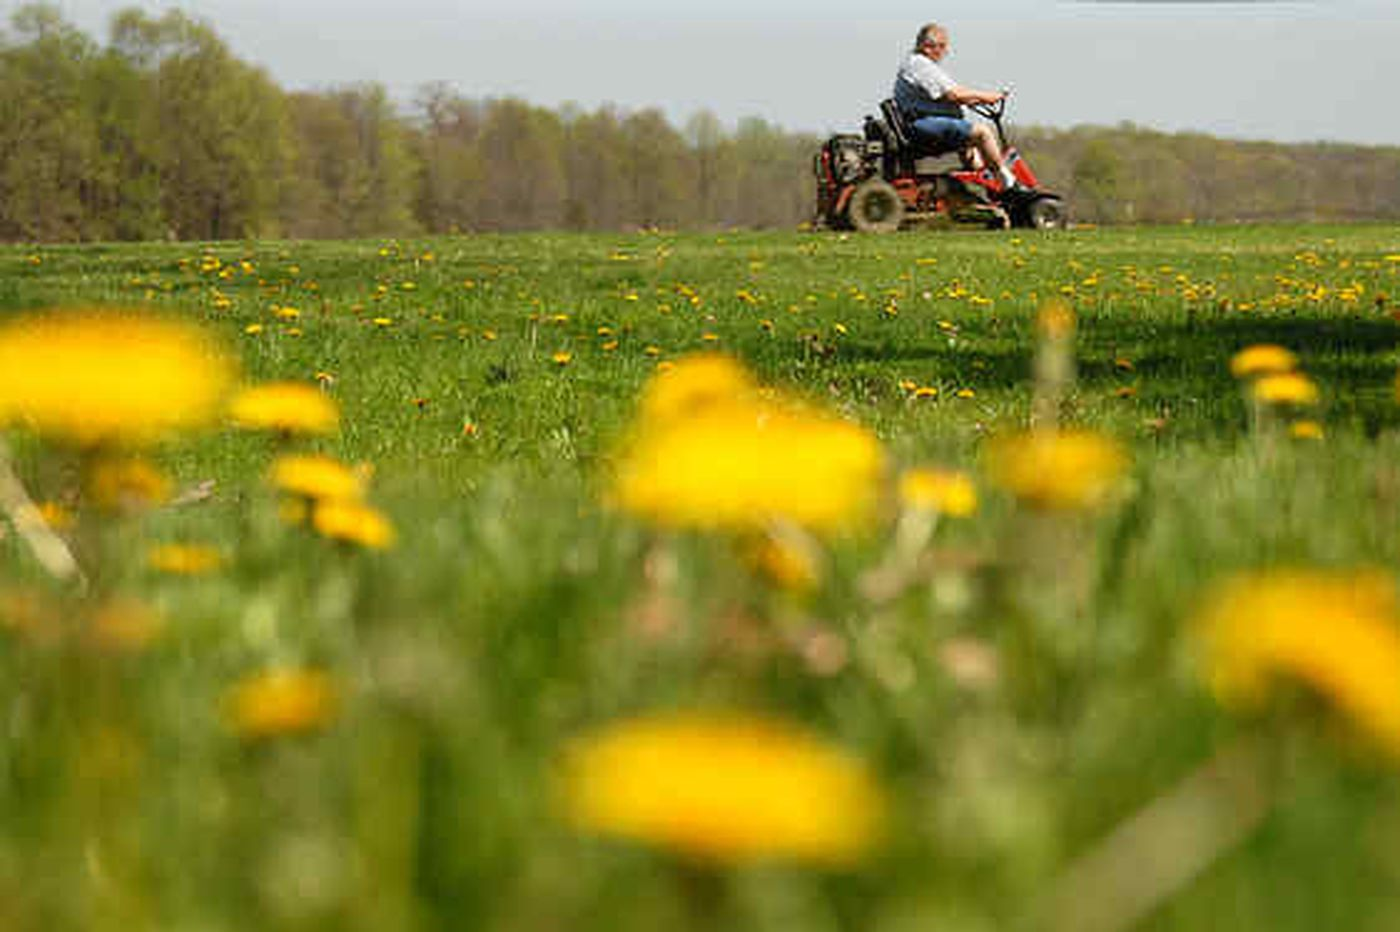 Why younger generations reject the perfect green lawns their fathers labored over